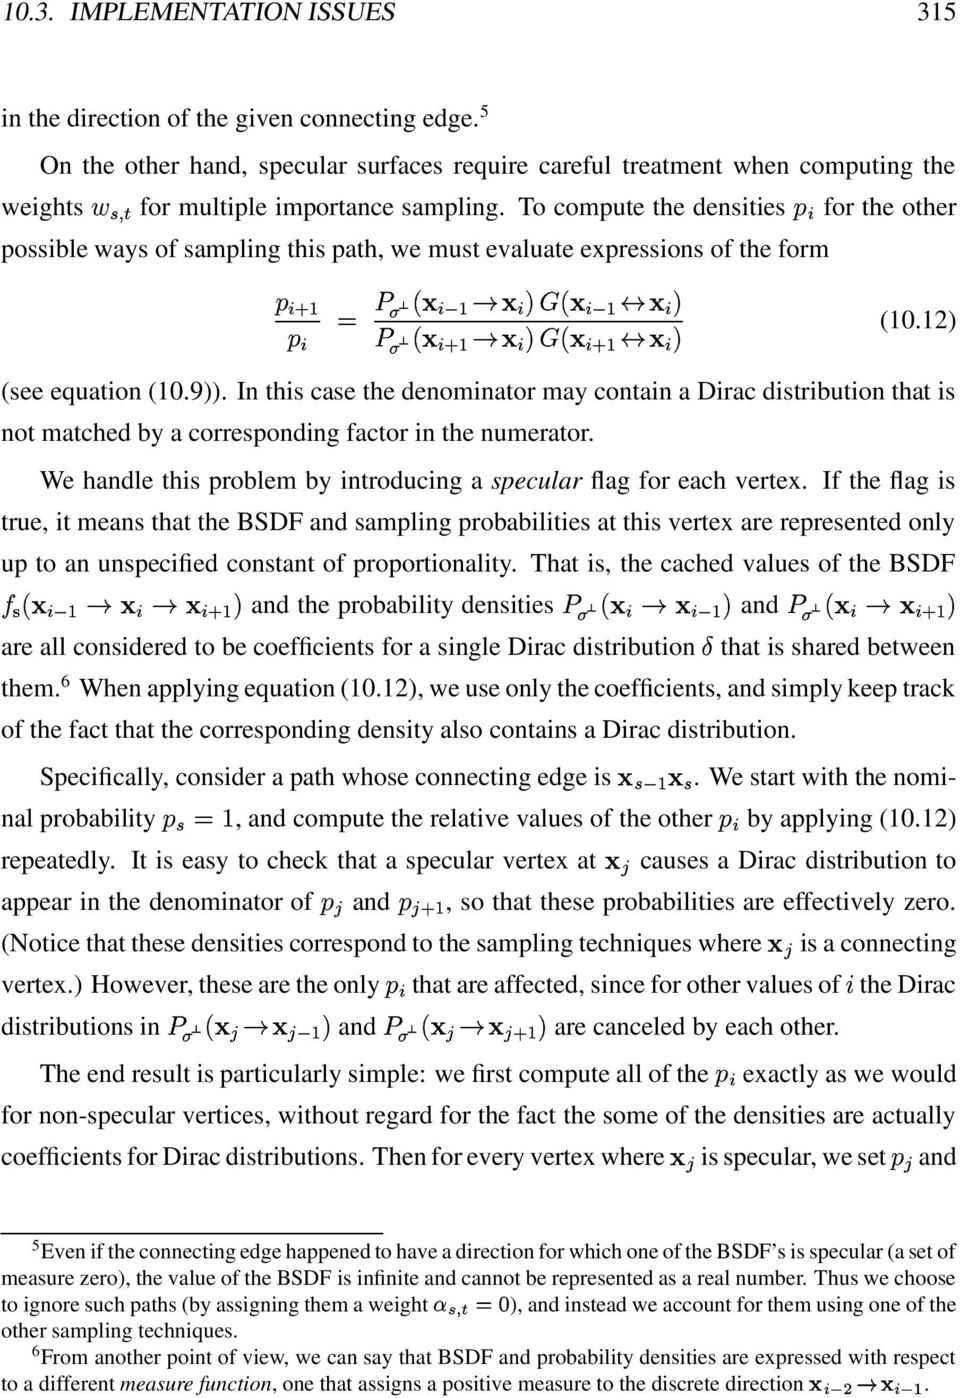 "To compute the densities A for the other possible ways of sampling this path, we must evaluate expressions of the form ACG 2 "" A >&2F/? A 04 ' A >&2 57 A A "" ACG 2F/? A 04 ' ACG 2 57 A (10."